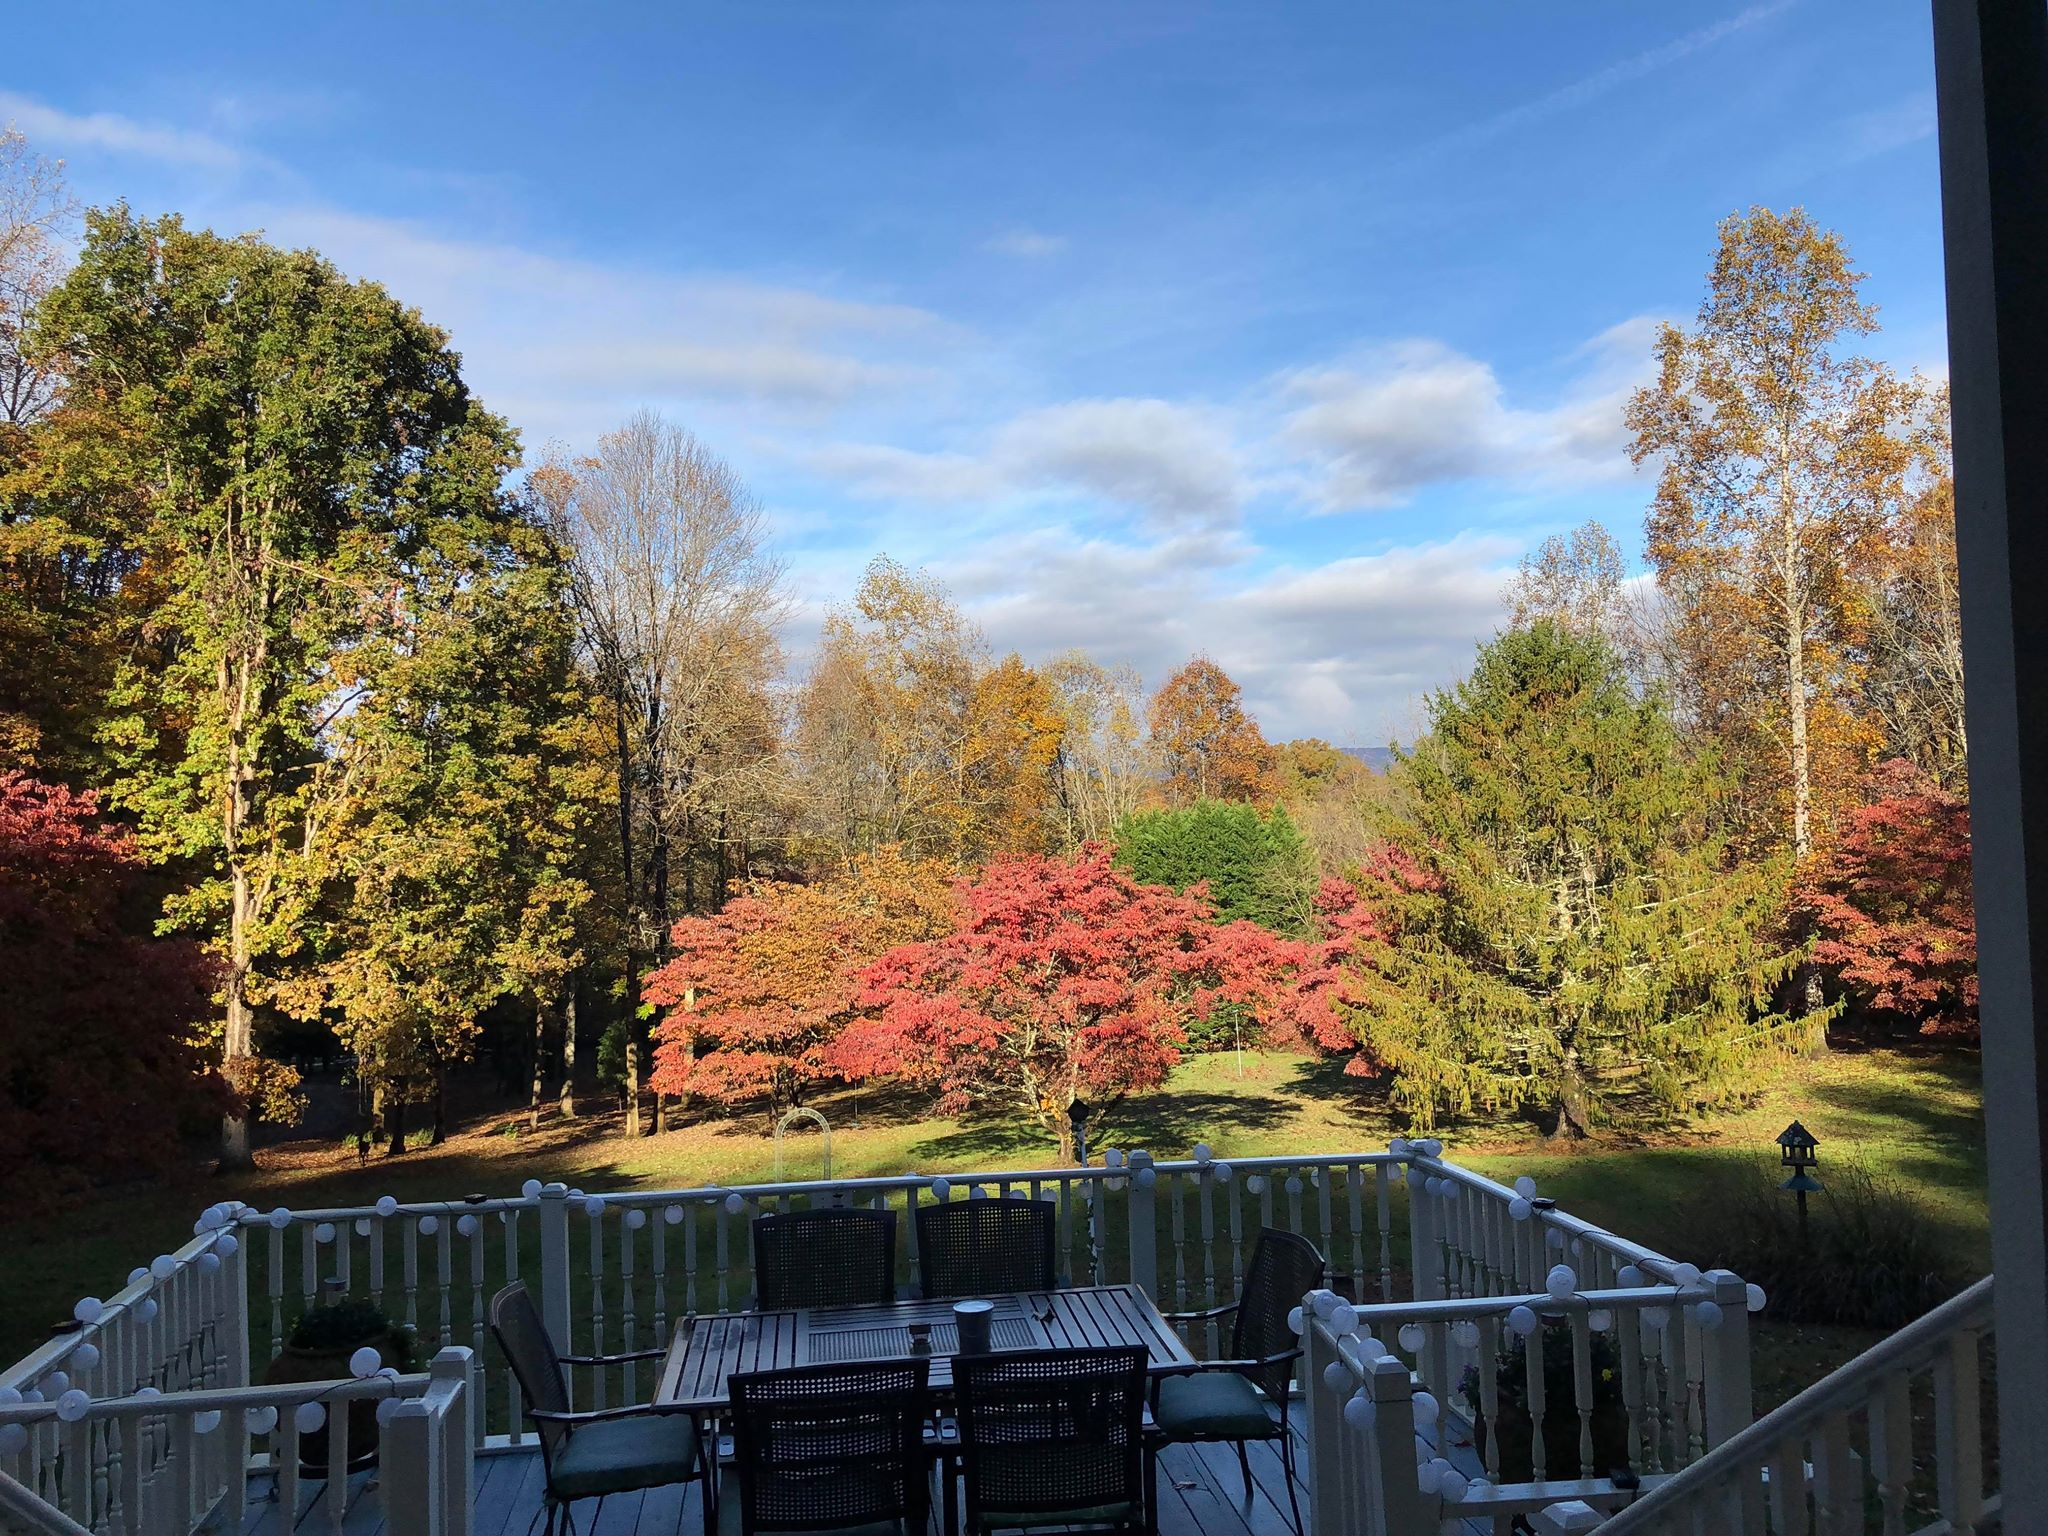 Enchanted Villa in the Smokies, Smoky Mountain fall colors, Gatlinburg fall colors, Smoky Mountain cabins with views, Pigeon Forge fall colors, Wears Valley fall colors, Smoky Mountain cabins with barbecues